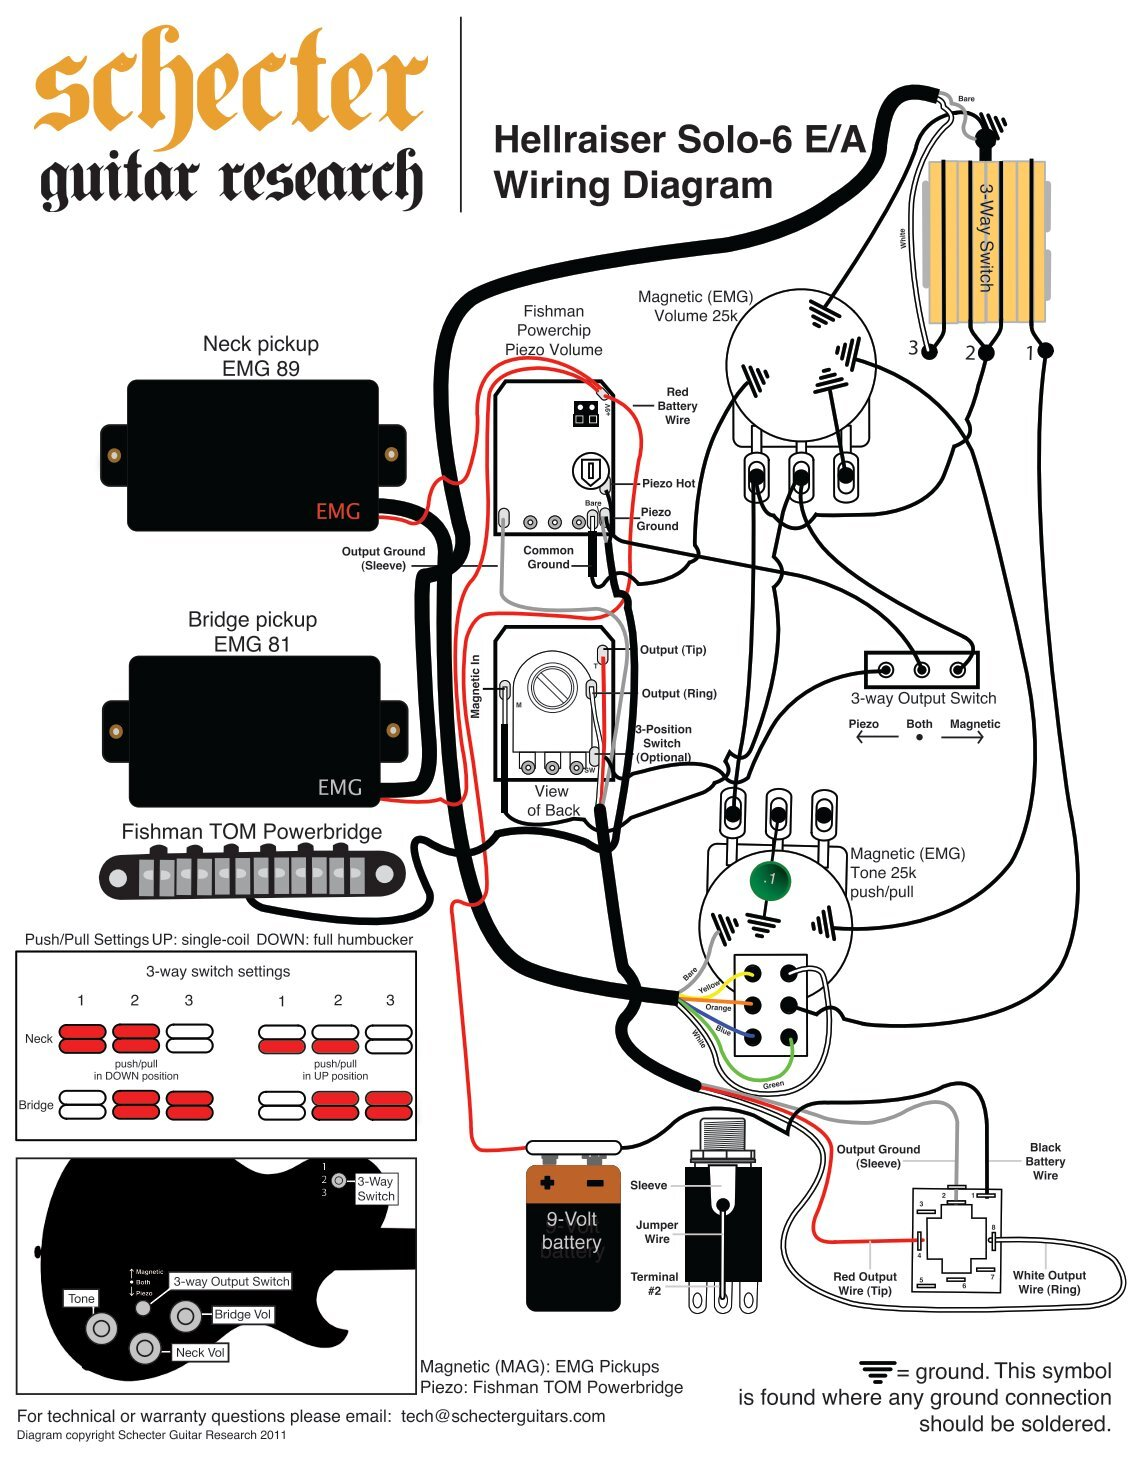 hellraiser solo 6 wiring diagram schecter guitars?quality\\\\\\\\\\\\\\\\\\\\\\\\\\\\\\\\\\\\\\\\\\\\\\\\\\\\\\\\\\\\\\\\\\\\\\\\\\\\\\\\\\\\\\\\\\\\\\\\\\\\\\\\\\\\\\\\\\\\\\\\\\\\\\\=80 diagrams 720683 kicker l7 12 wiring diagram subwoofer speaker kicker solo baric l5 wiring diagram at crackthecode.co